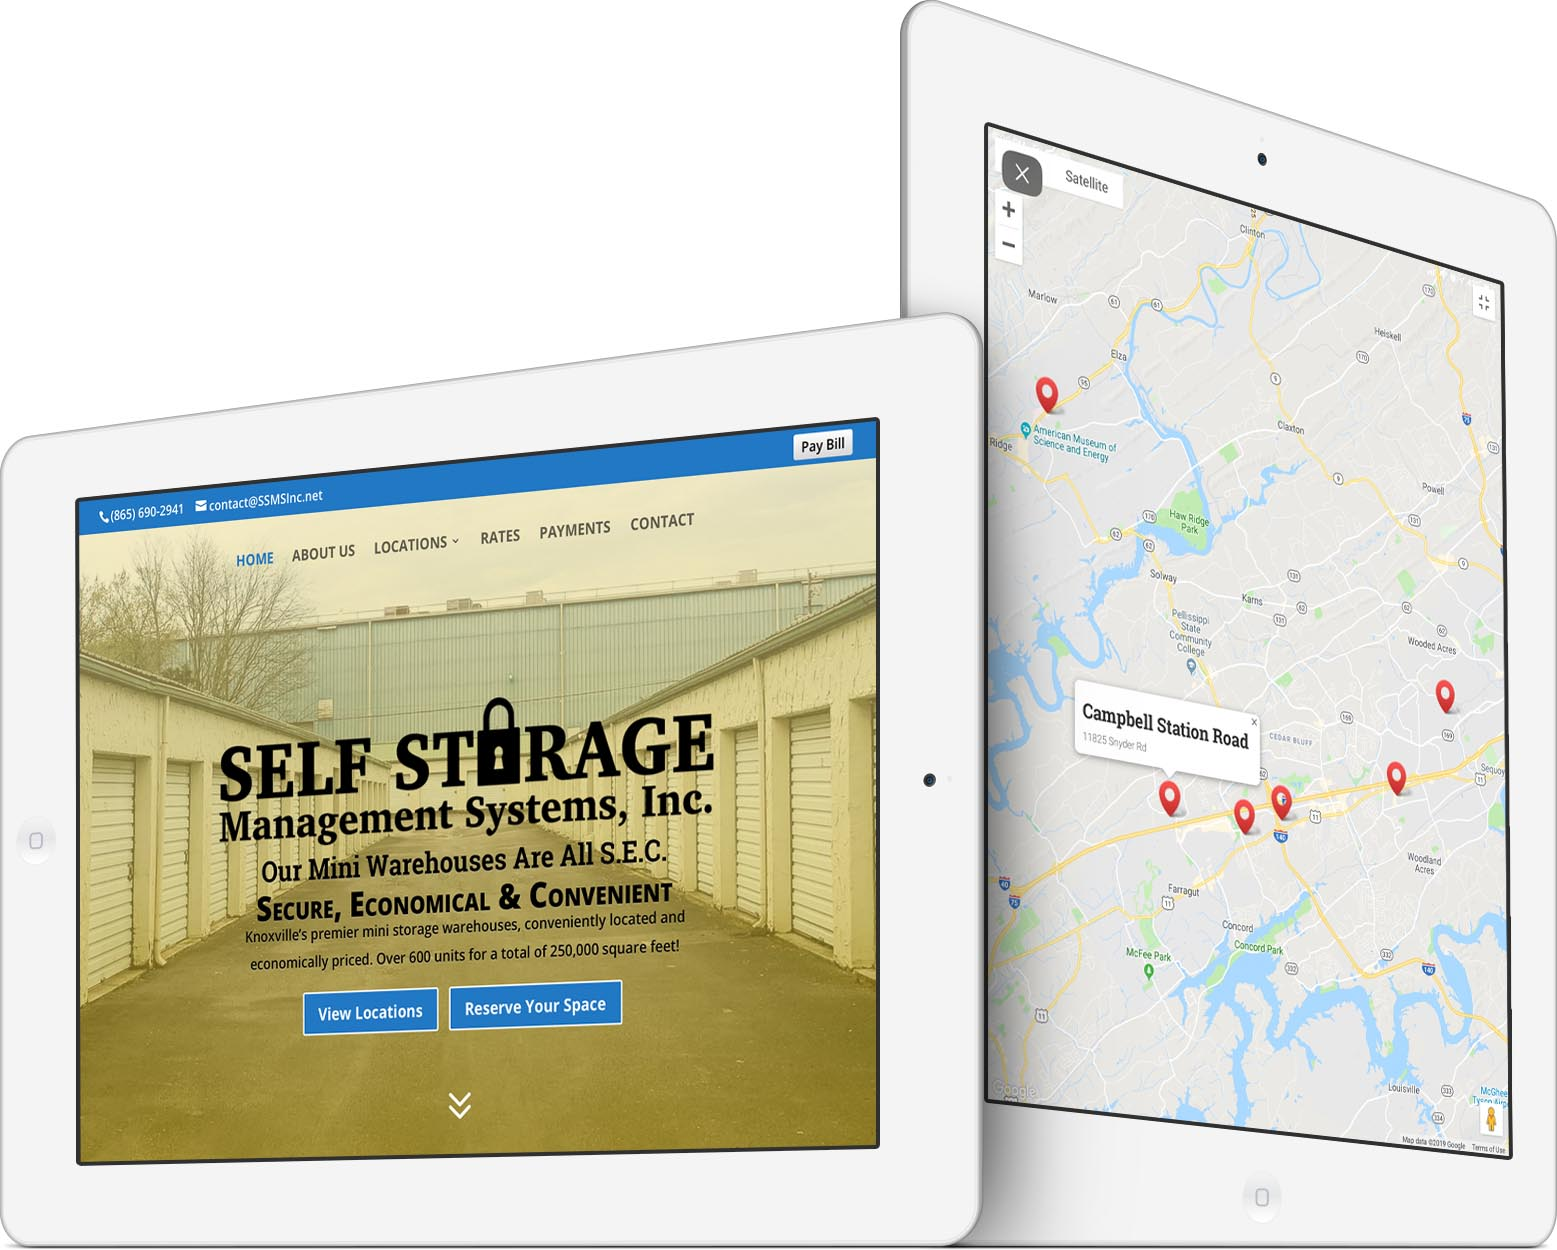 Self Storage Management Systems Responsive Web Design